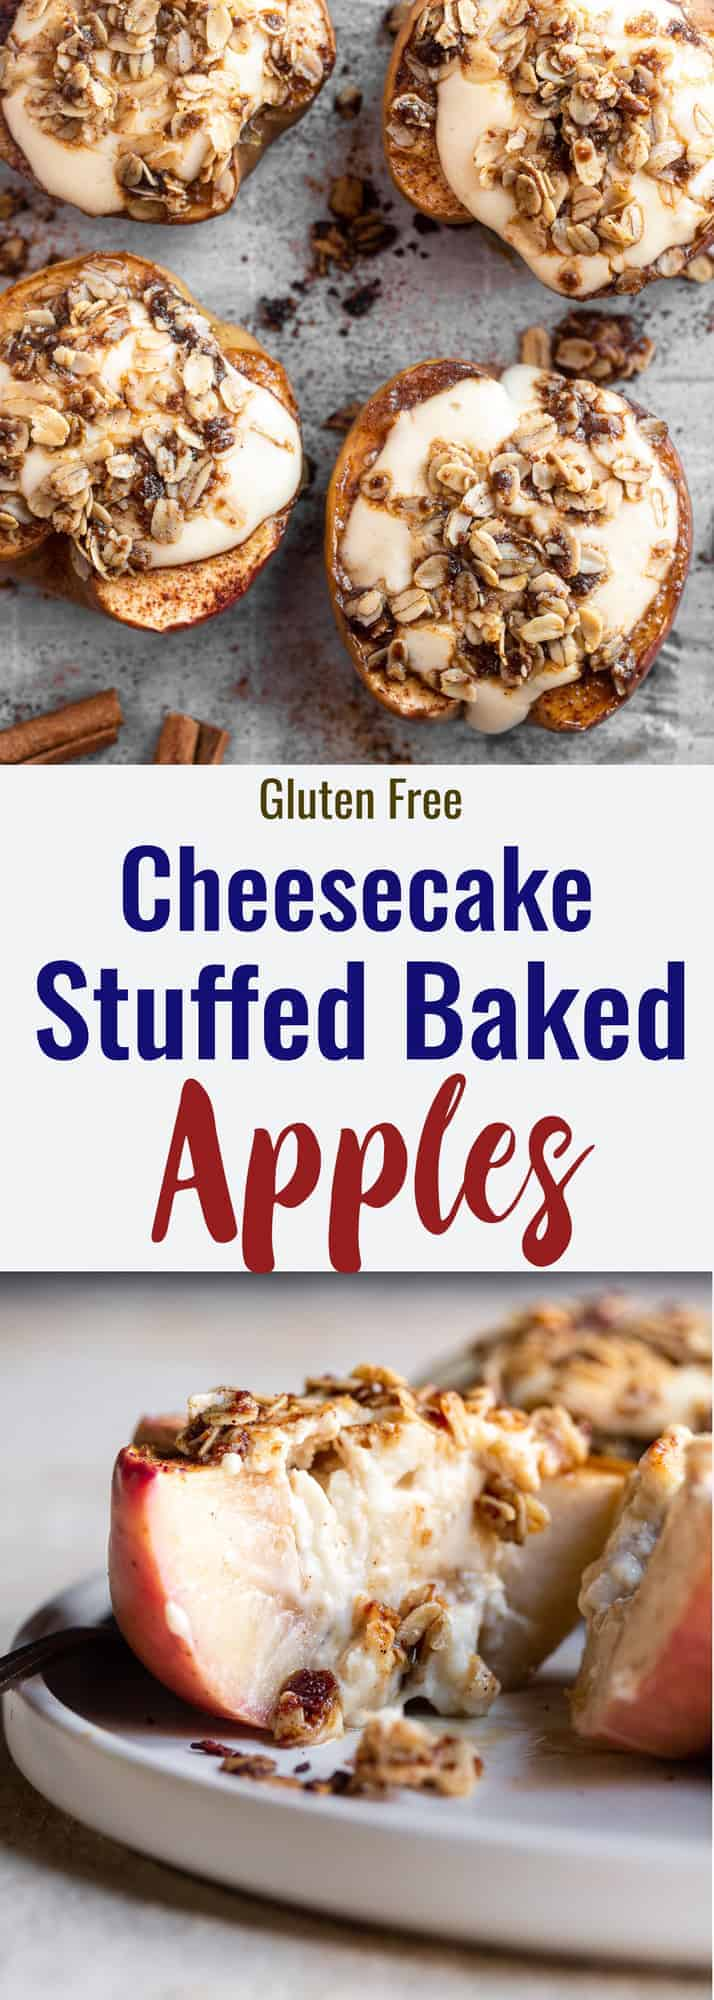 Cheesecake Stuffed Apples collage photo